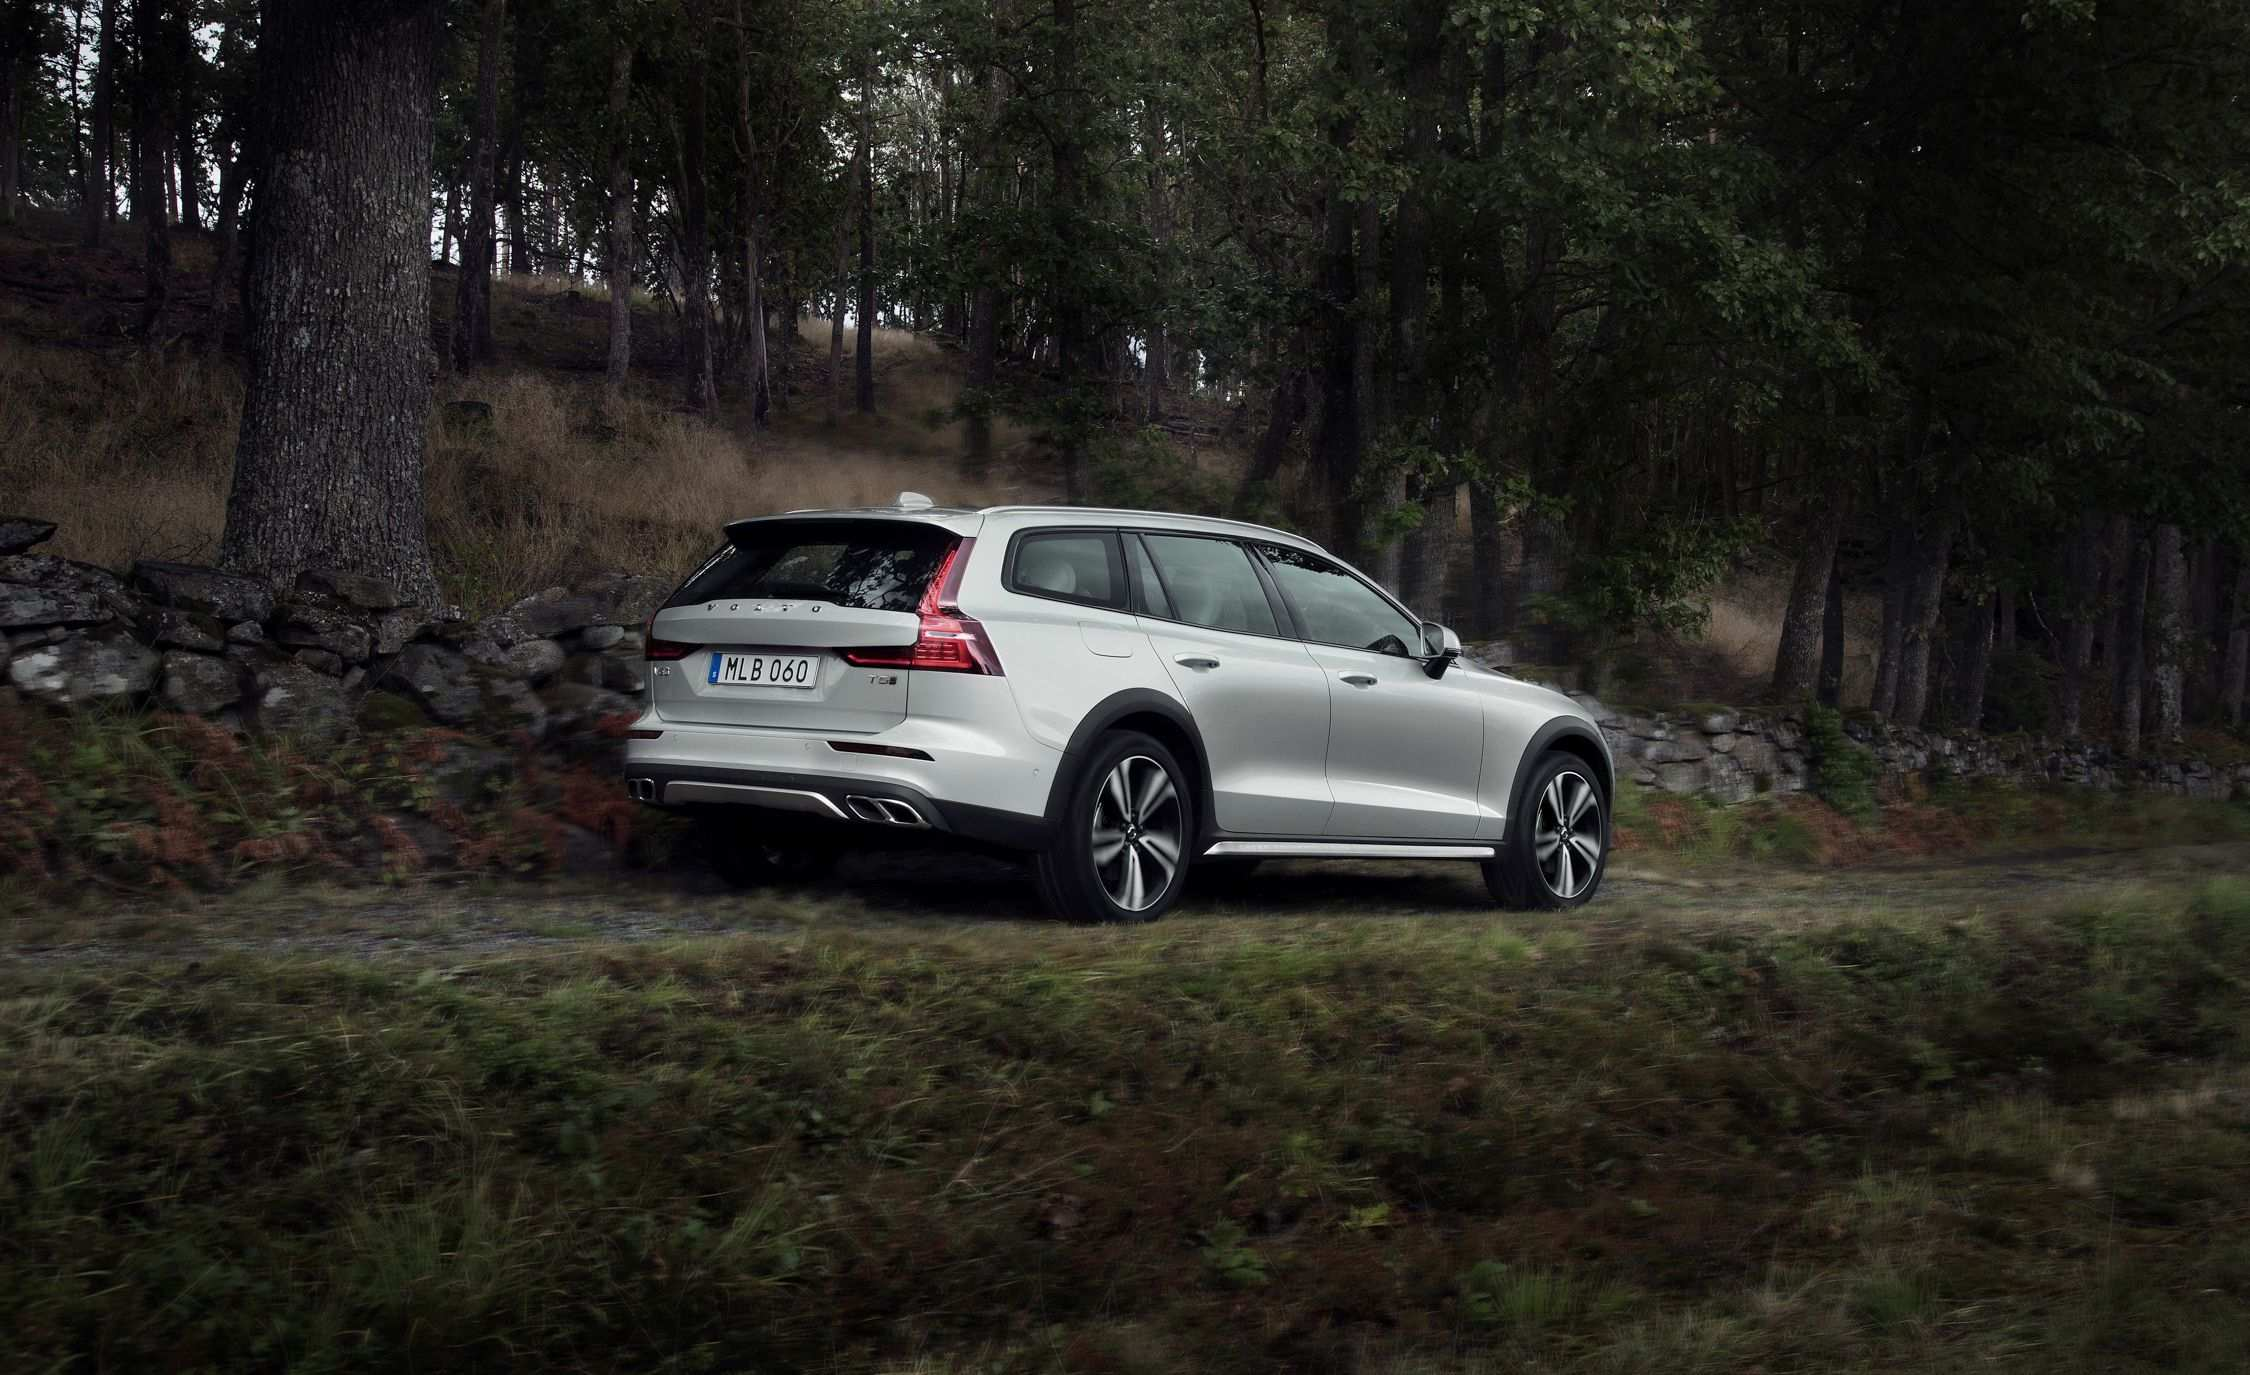 42 Best Review New Volvo V60 2019 Ground Clearance New Engine Prices for New Volvo V60 2019 Ground Clearance New Engine